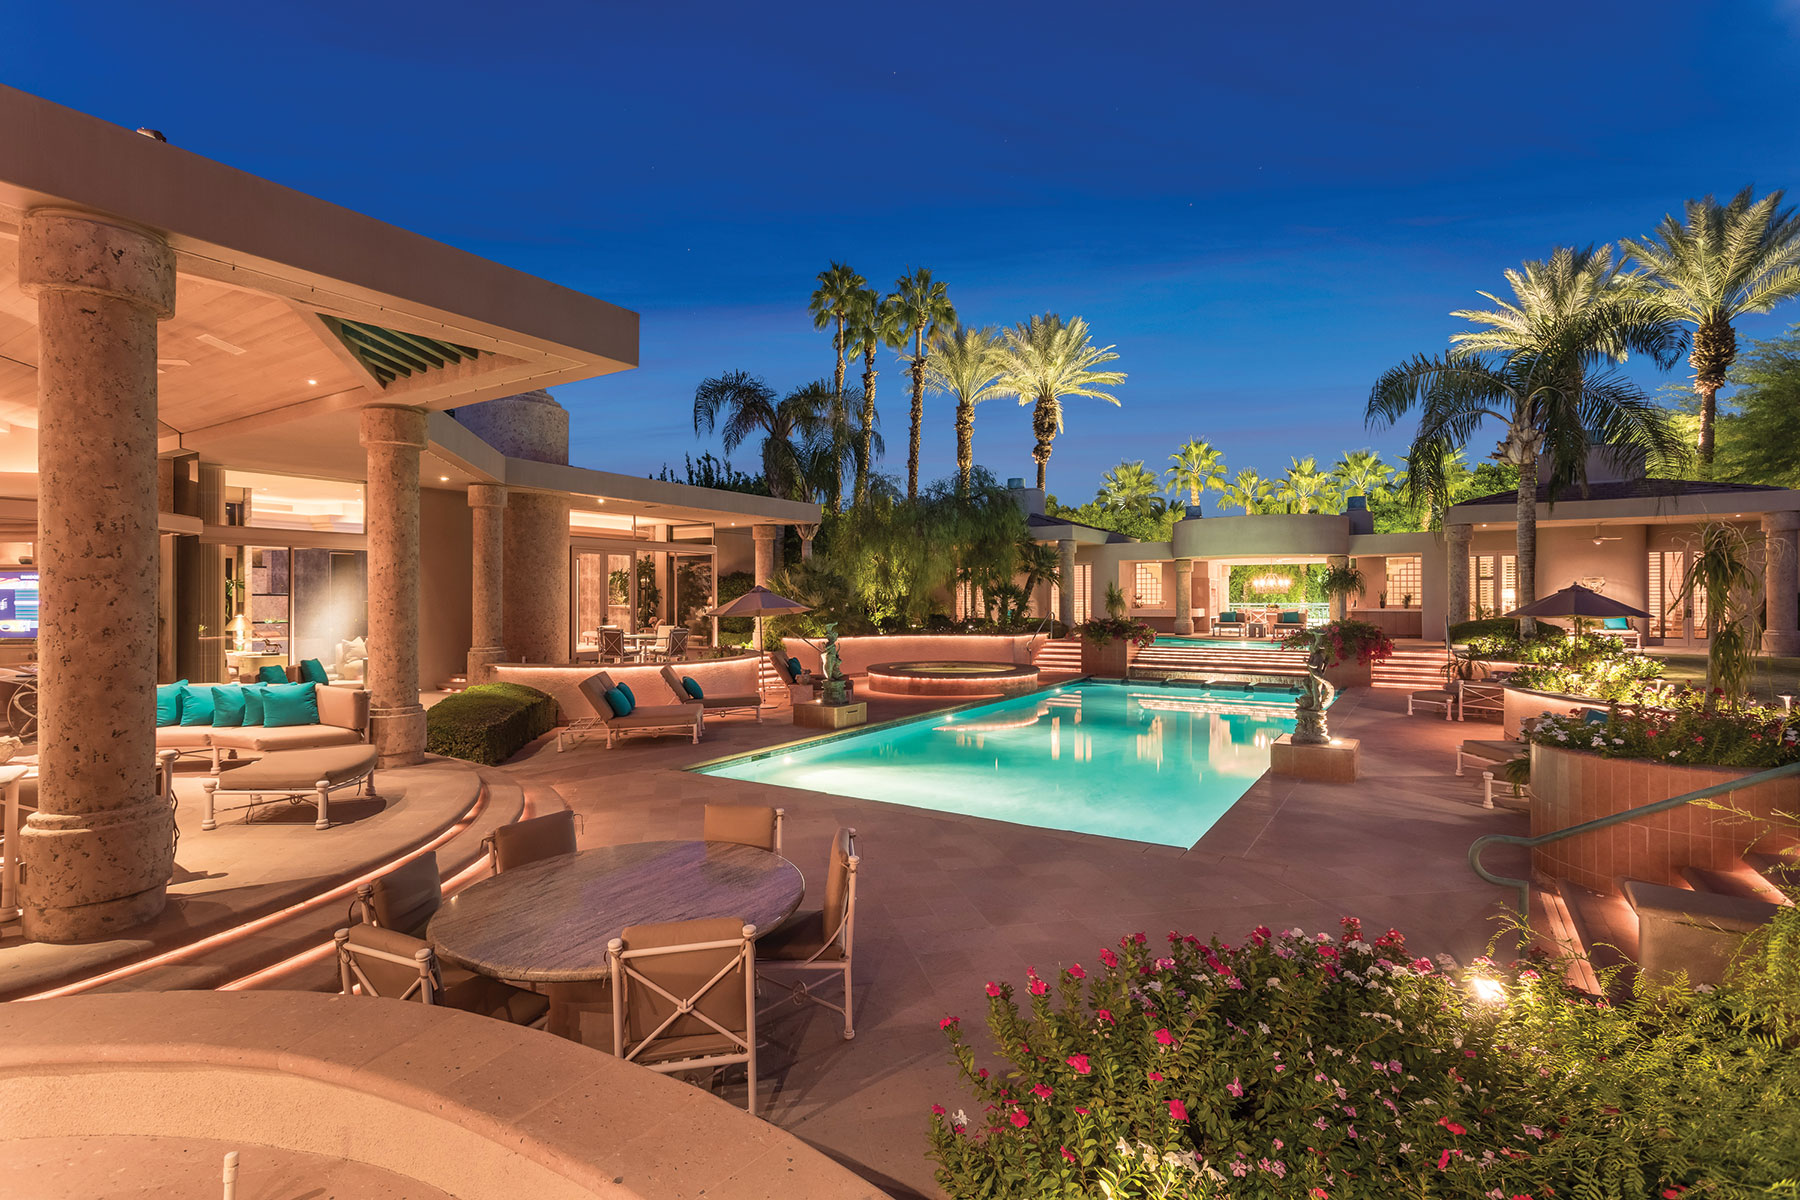 Single Family Home for Sale at 40350 Desert Creek Rancho Mirage, California 92270 United States